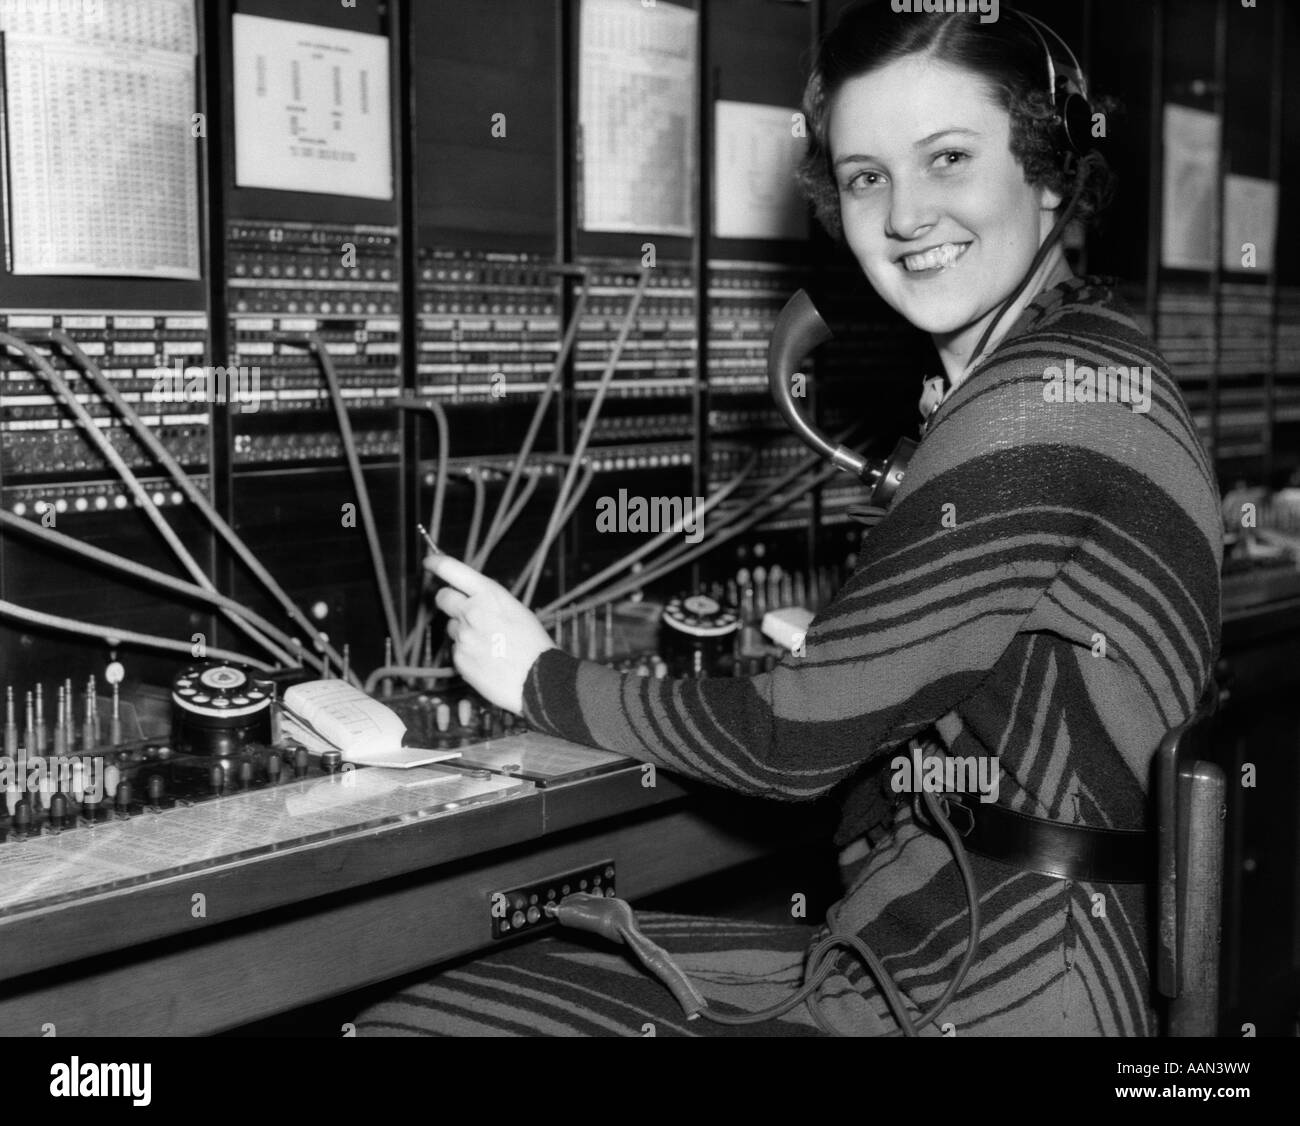 Old fashioned telephone exchange worker 21